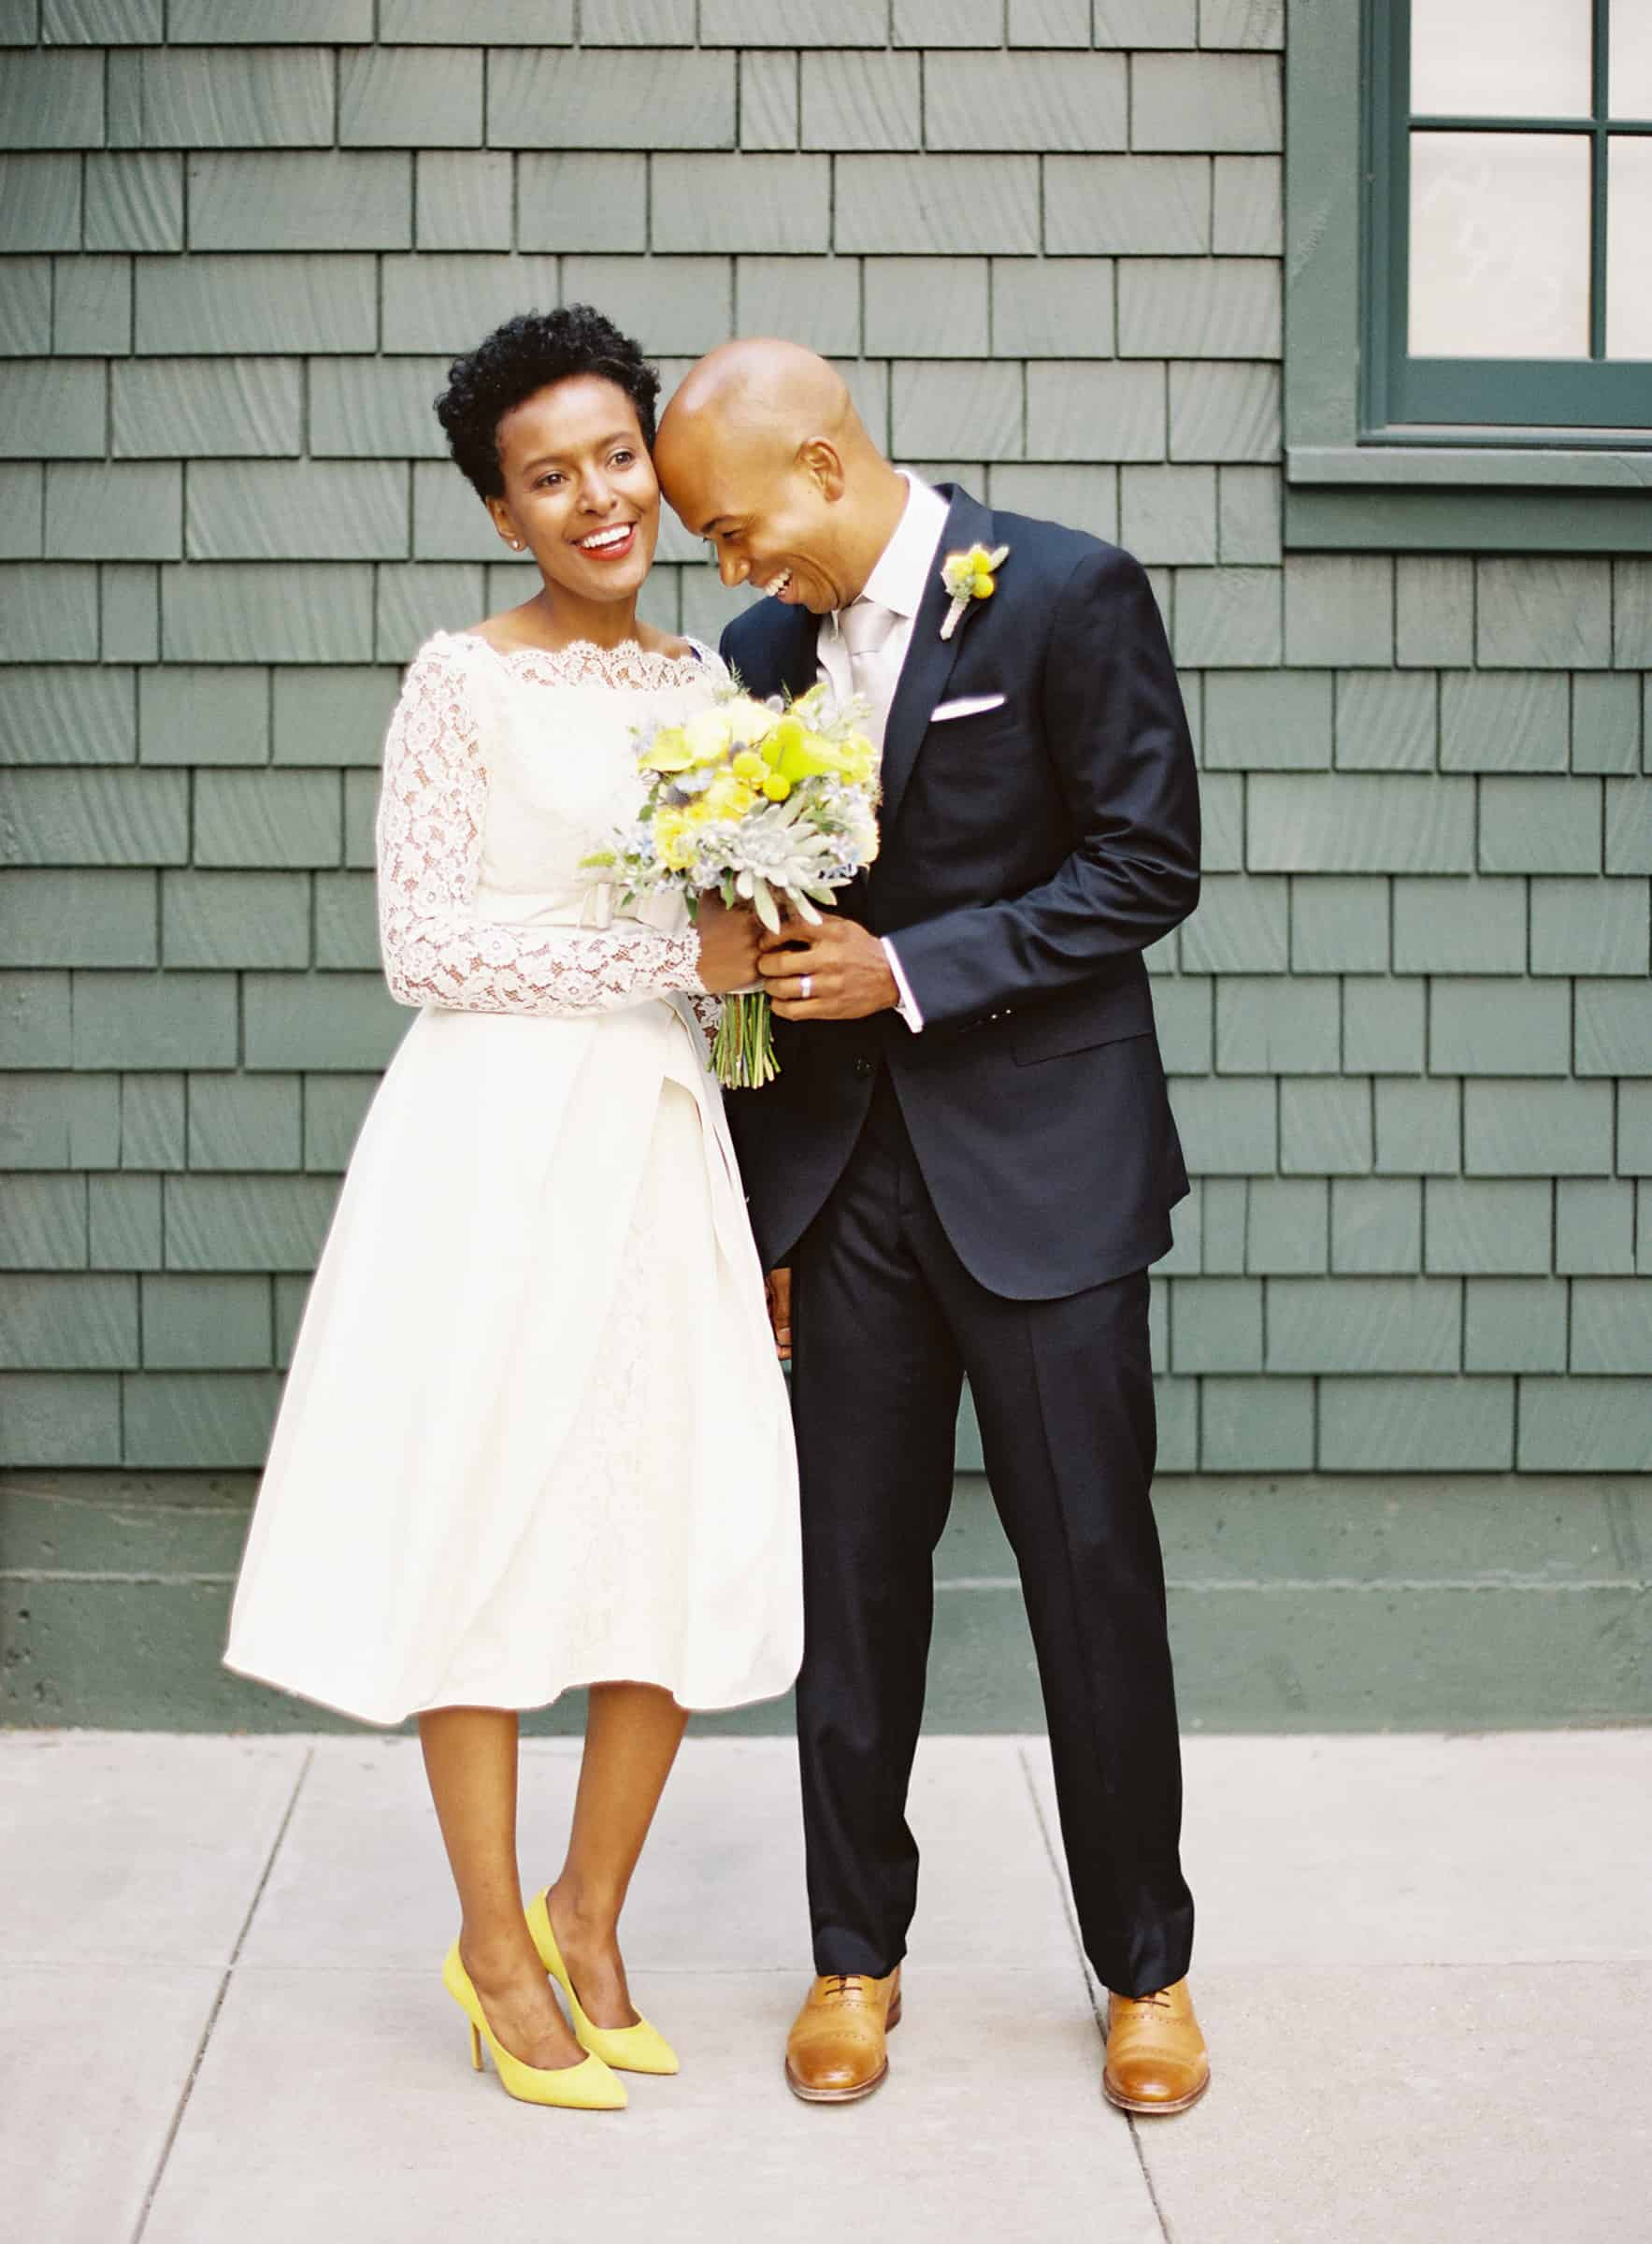 afrian american bride in short dress and groom laughing